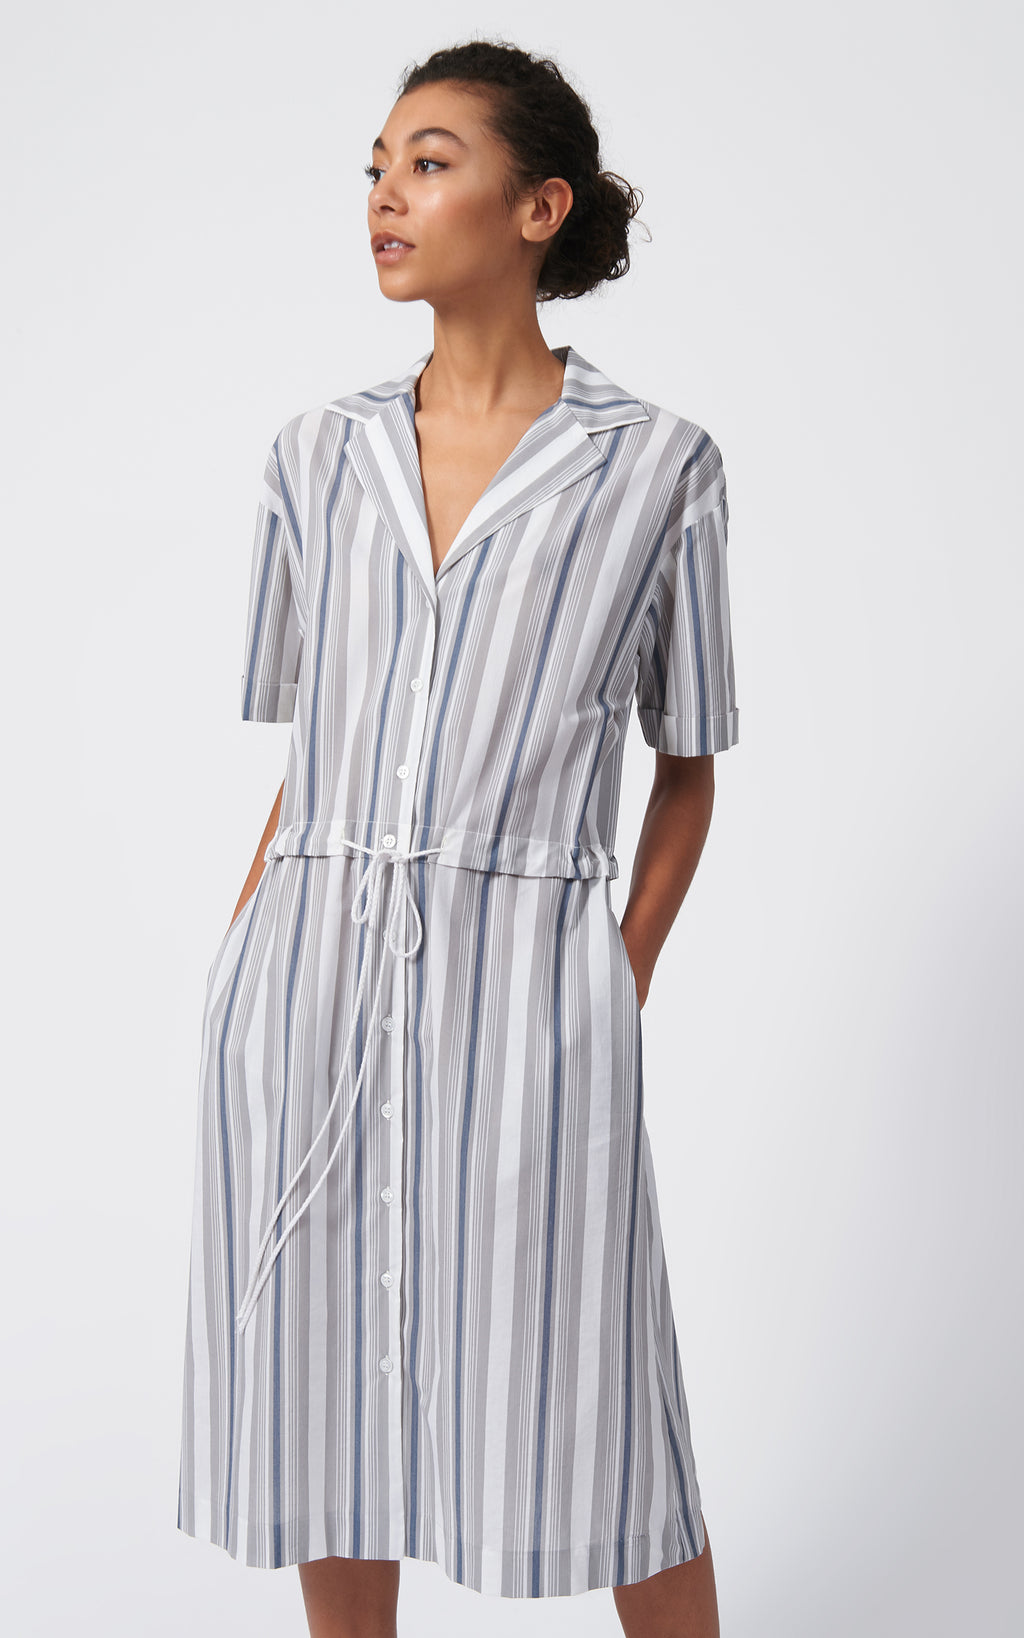 NOTCH COLLAR SHIRT DRESS - STRIPE